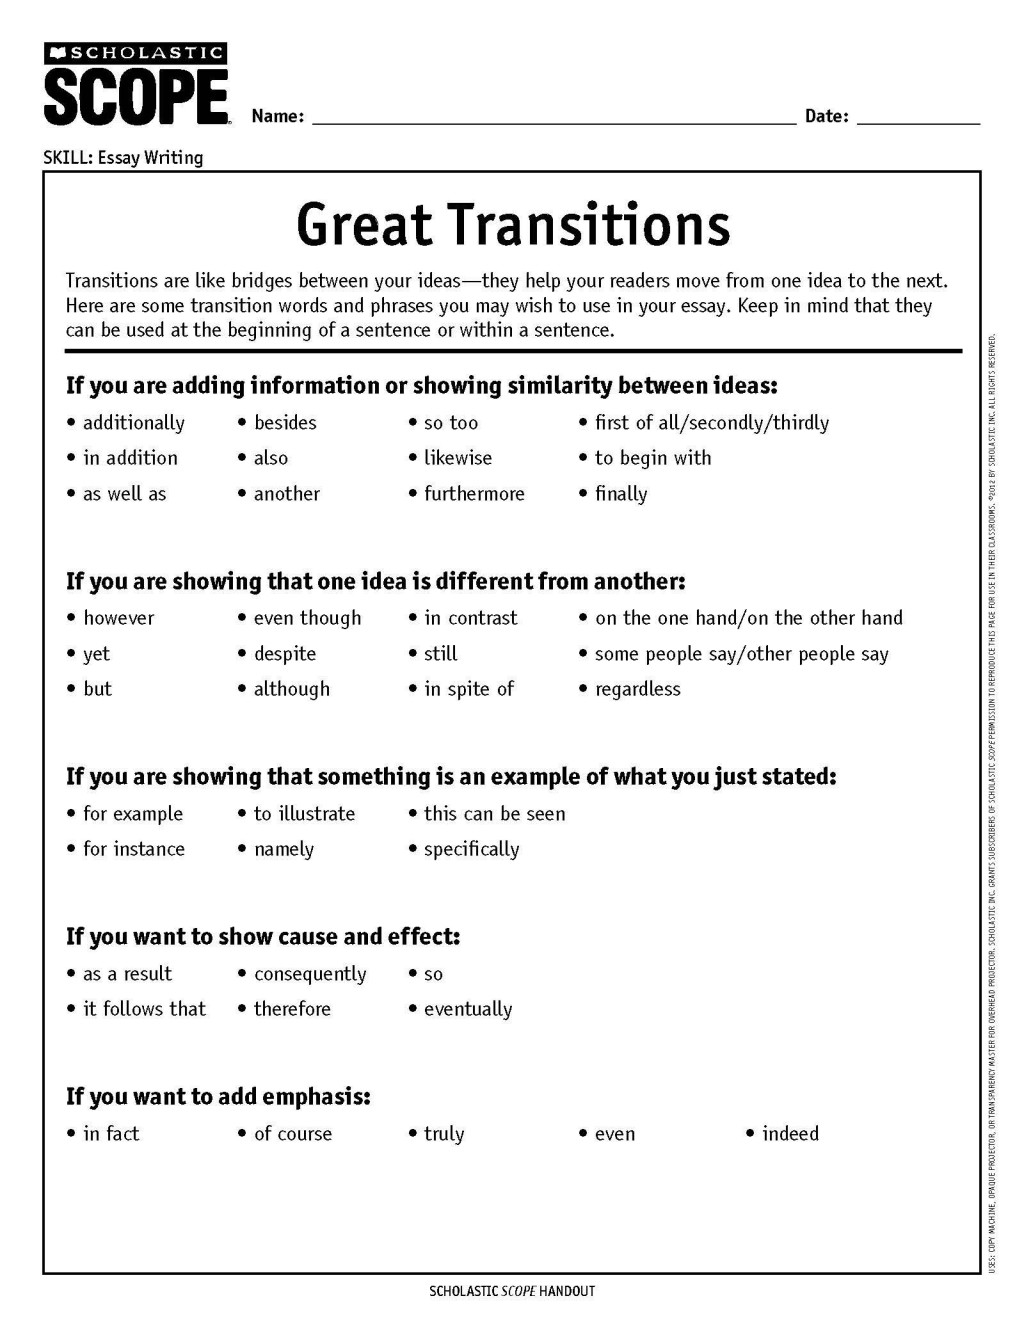 019 Essay Example Transitions How To Choose The Perfect Transition Word Or Phrase Writing Words For An List Of Transitional Essays Pdf Archaicawful Contrast Sentence Examples Conclusion In Spanish Large